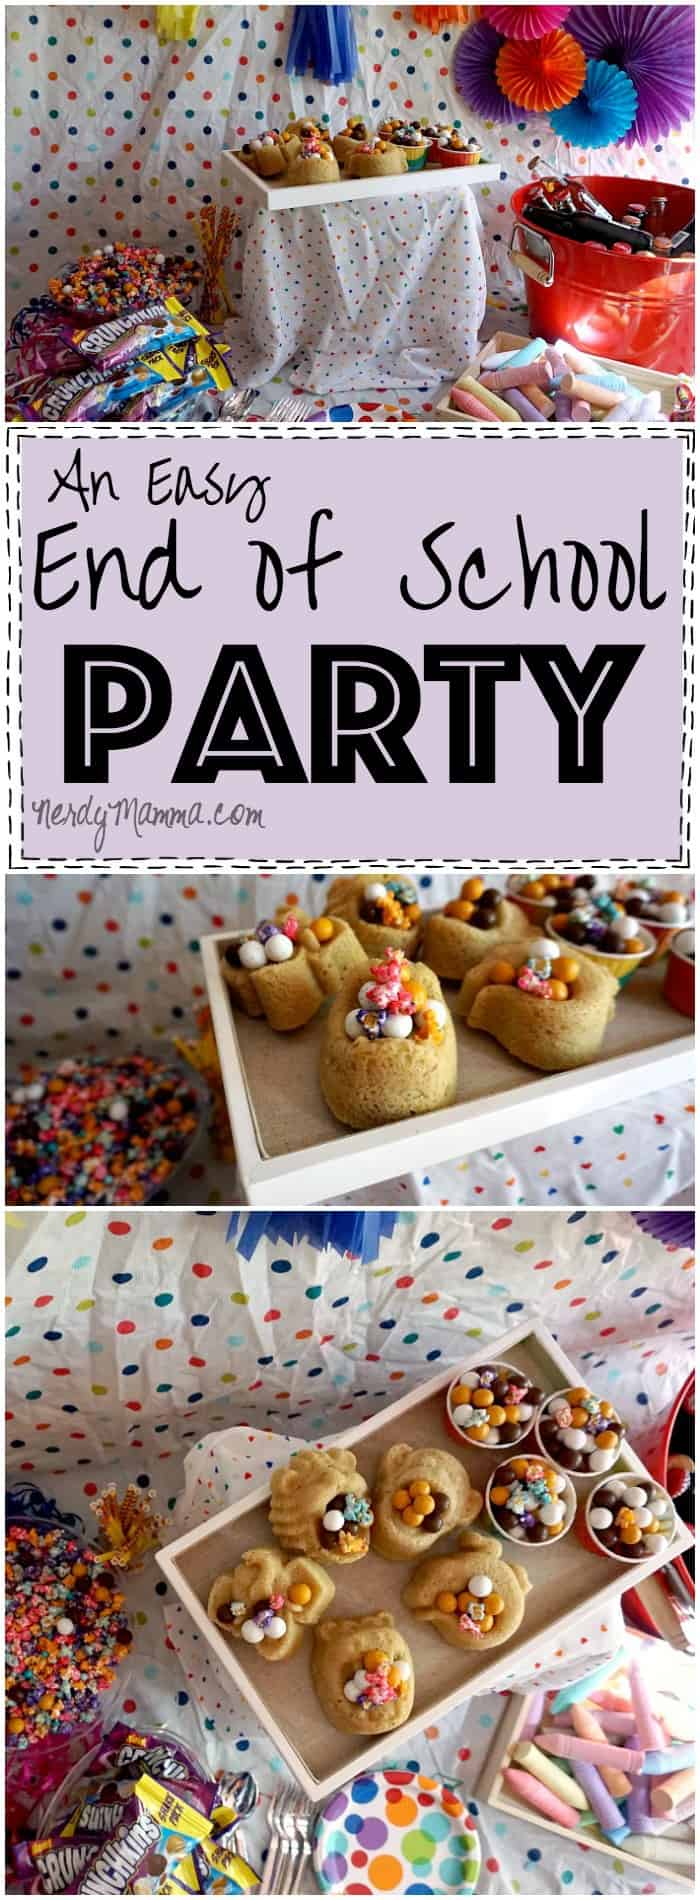 This end of school year party is so cute! And easy! Definitely doing this for the kids this year!